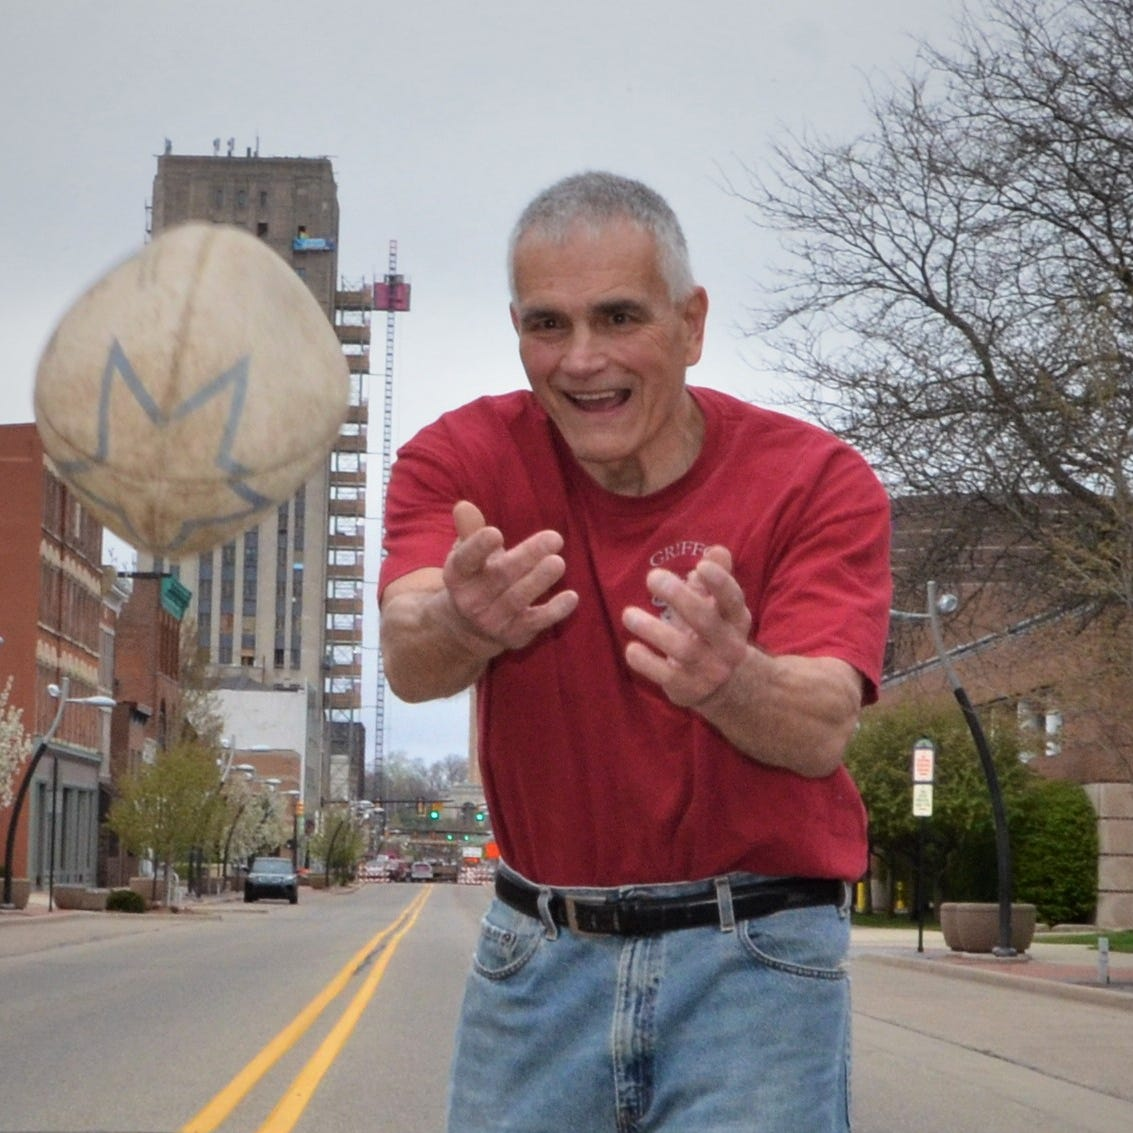 George Award: Al Houser took the rugby ball and ran with it